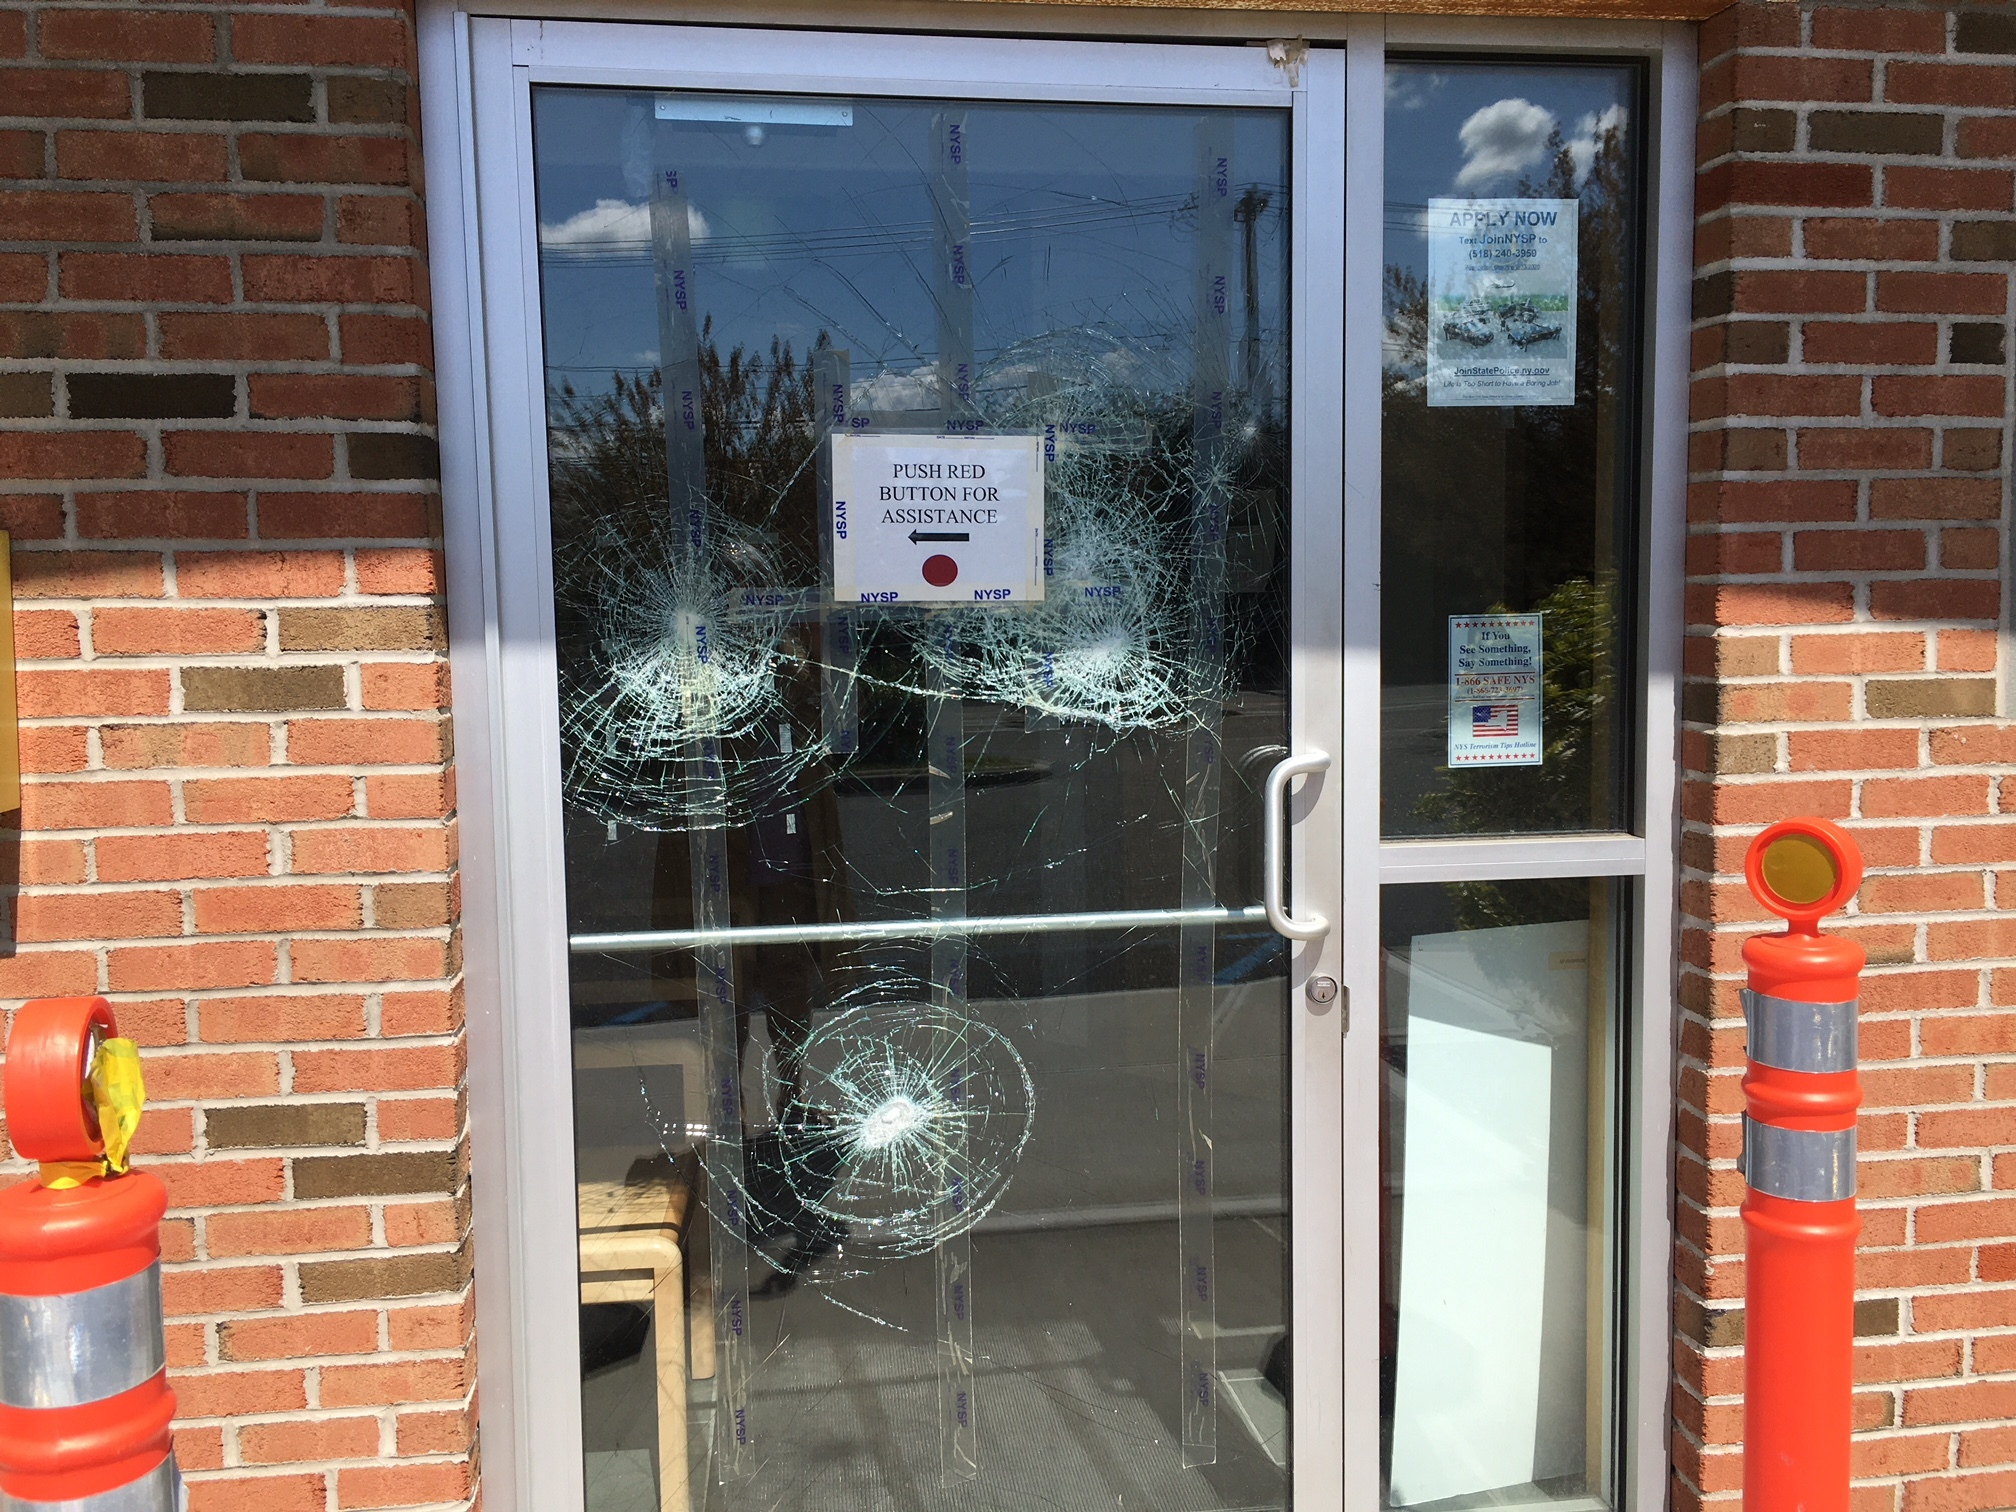 Community members  complained of 'bullet holes' in the door and windows at the State Trooper barracks in Riverside.